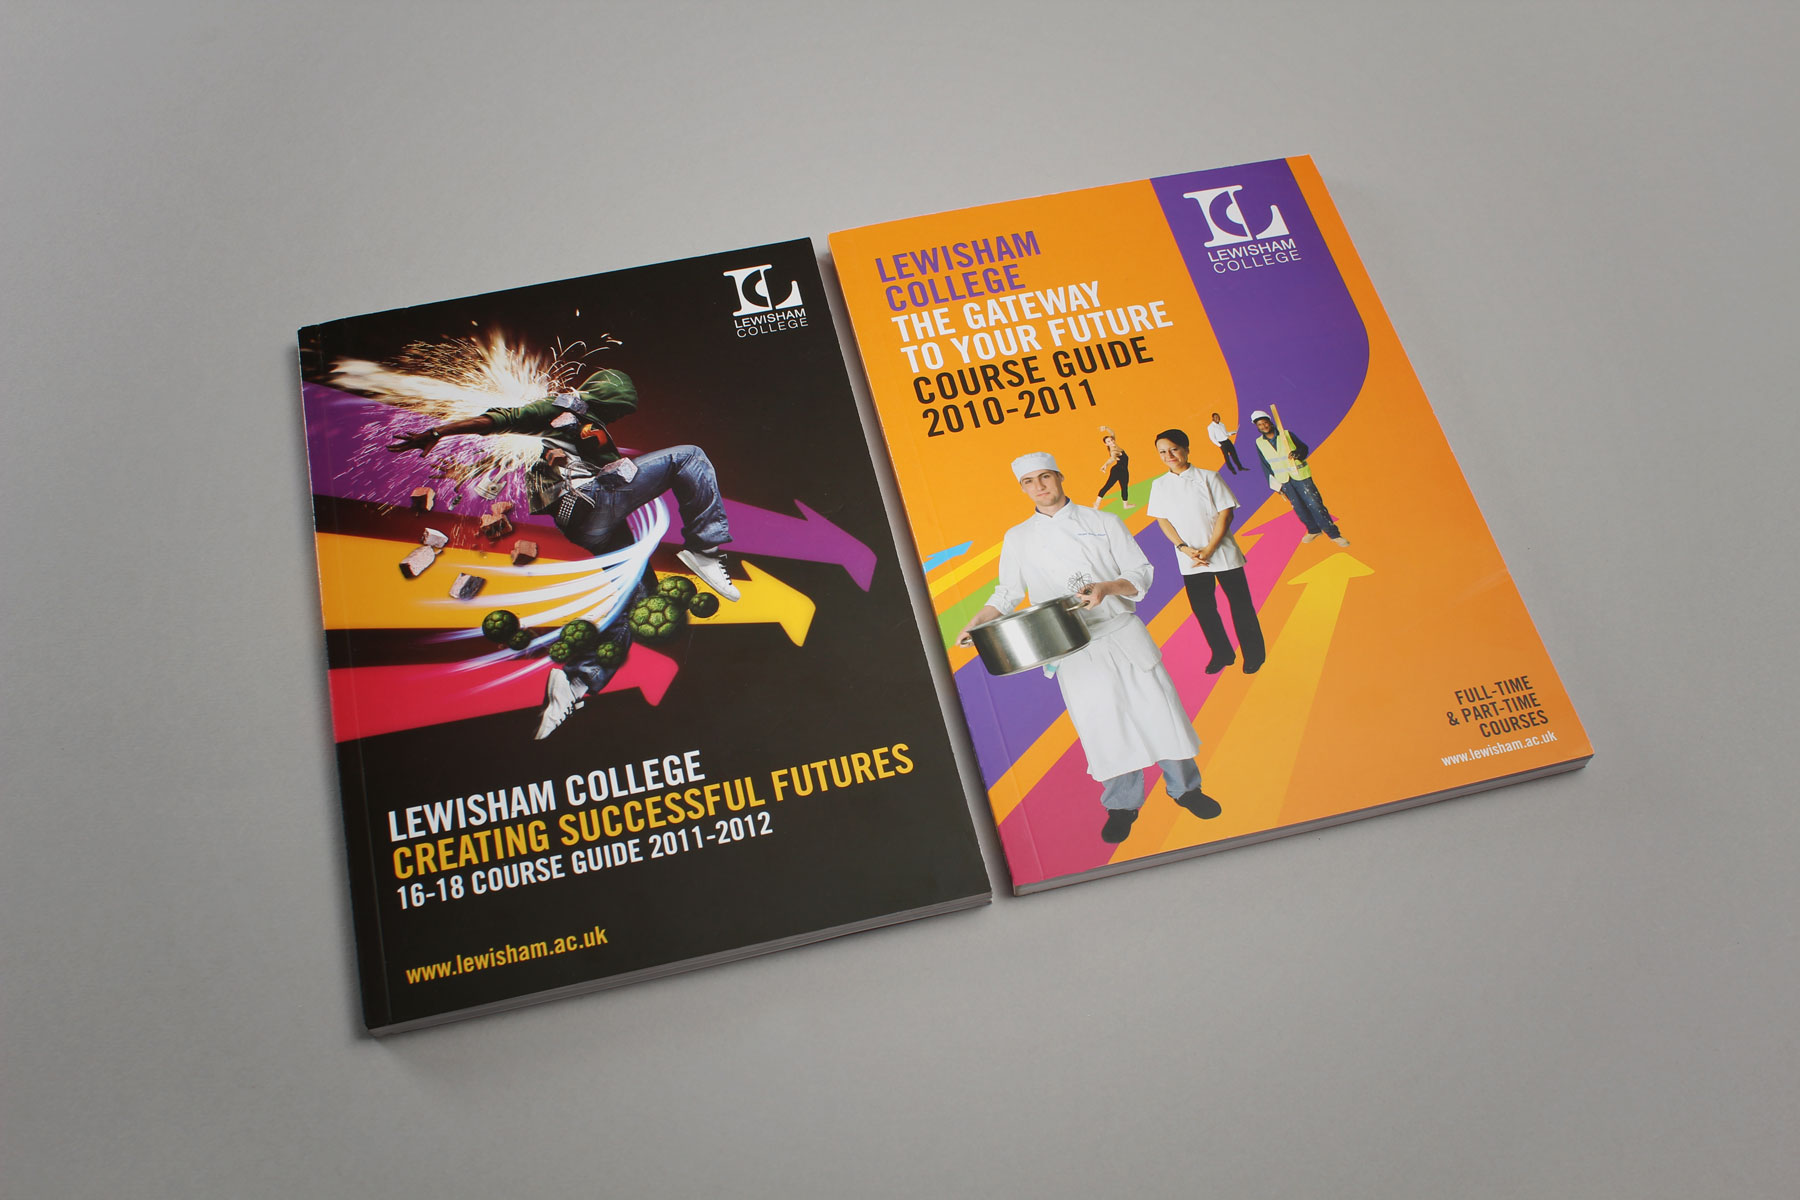 Two course guides showing how the brand language has been extended.